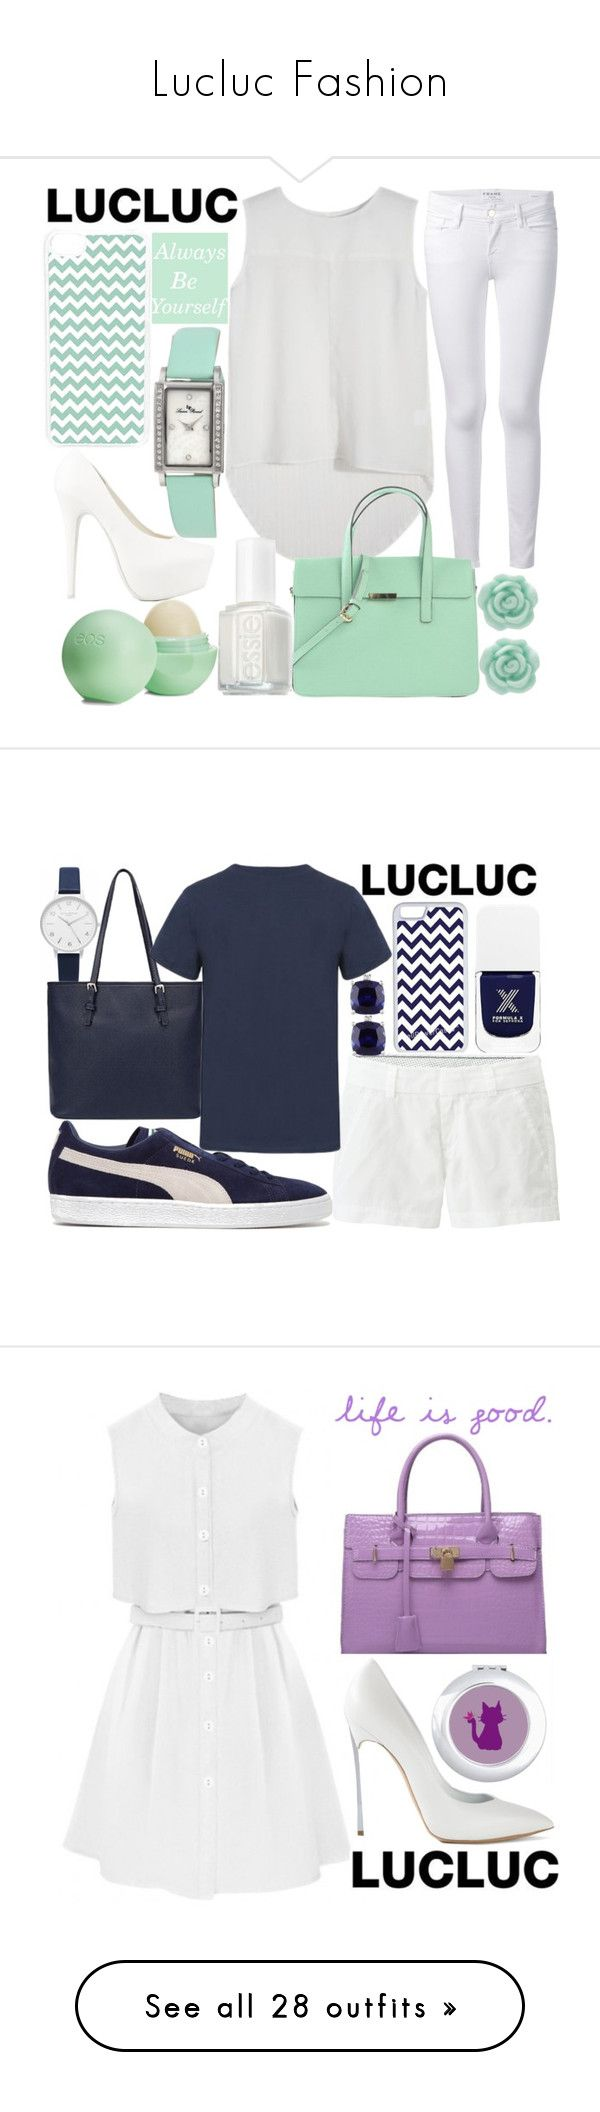 """""""Lucluc Fashion"""" by j-n-a ❤ liked on Polyvore featuring Frame, Nly Shoes, Lucien Piccard, CellPowerCases, Eos, Essie, LC Lauren Conrad, Olivia Burton, Miadora and Sephora Collection"""